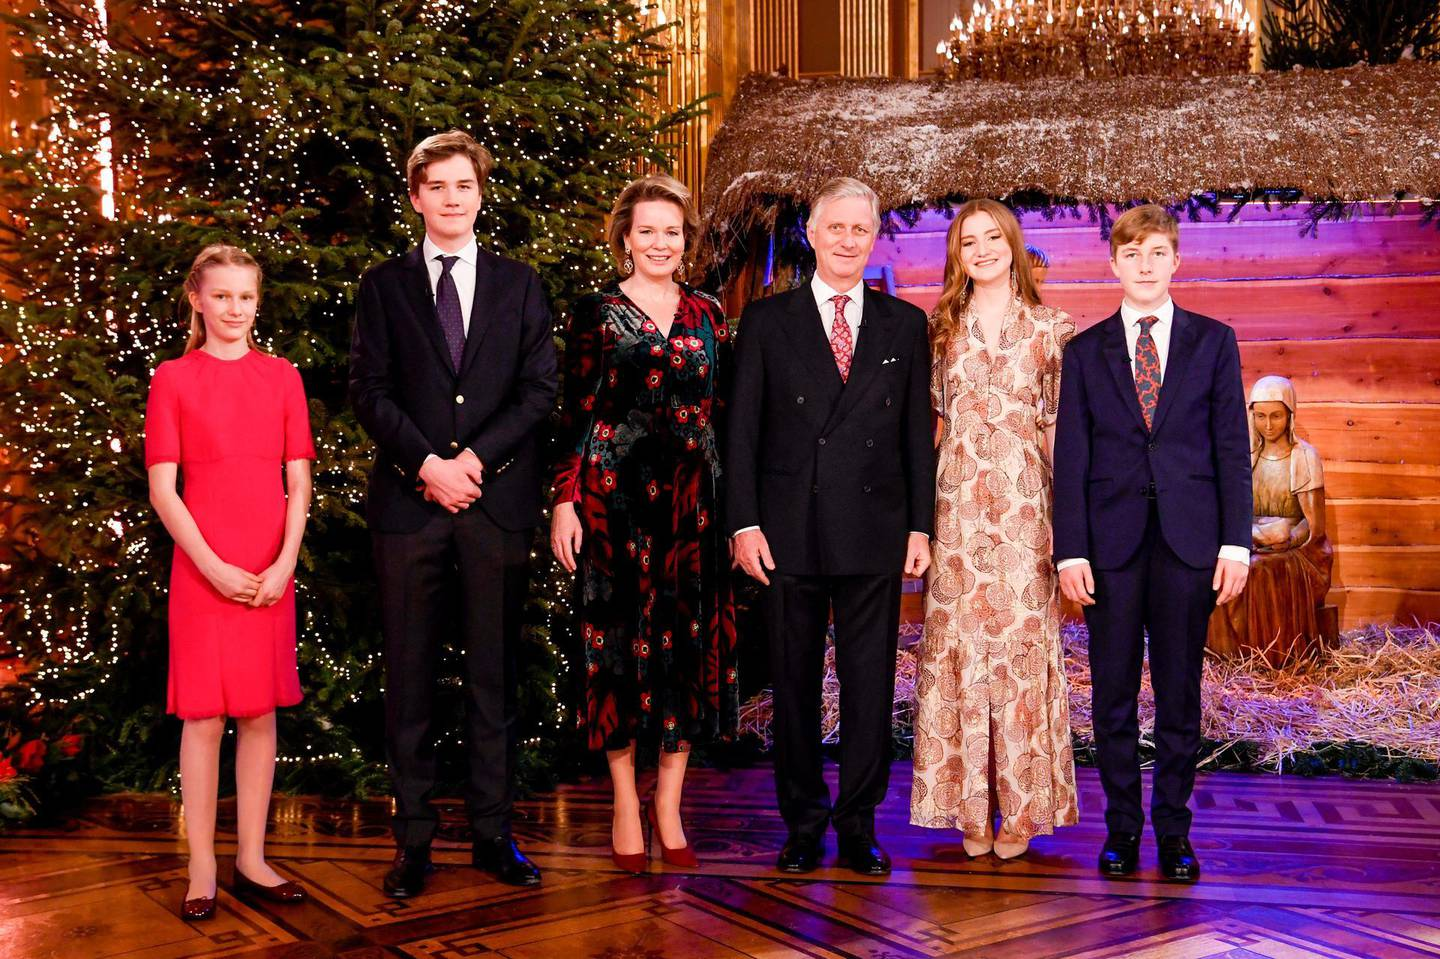 """BRUSSELS, BELGIUM - DECEMBER 17: Princess Eléonore of Belgium, Prince Gabriel, Queen Mathilde, King Philippe of Belgium, Princess Elisabeth and Prince Emmanuel pose in front of the Christmas Crib prior to attending the Christmas Concert by the Scala Choir at the Royal Palace on December 17, 2020 in Brussels, Belgium. The throne room is decorated with a Christmas """"veil of origamis"""" conceived by designer Charles Kaisin. (Photo by Frédéric Sierakowski - Royal Belgium Pool/Getty Images) (Photo by Frédéric Sierakowski - Royal Belgium Pool/Getty Images)"""